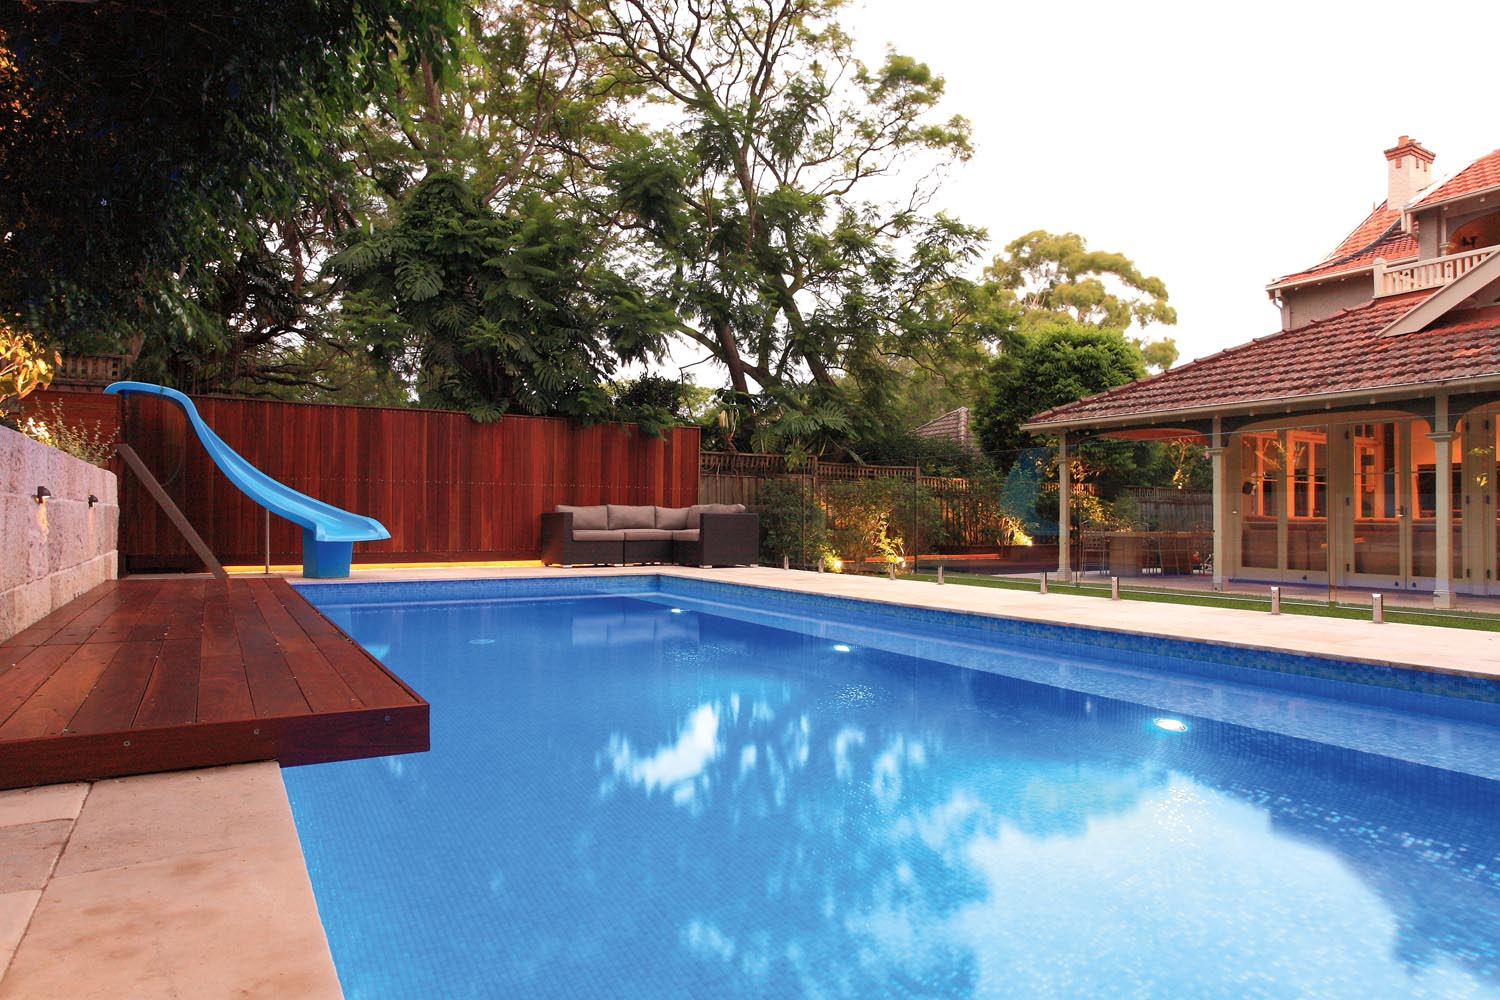 A modern blue pool next to a house with outdoor furniture and a water slide